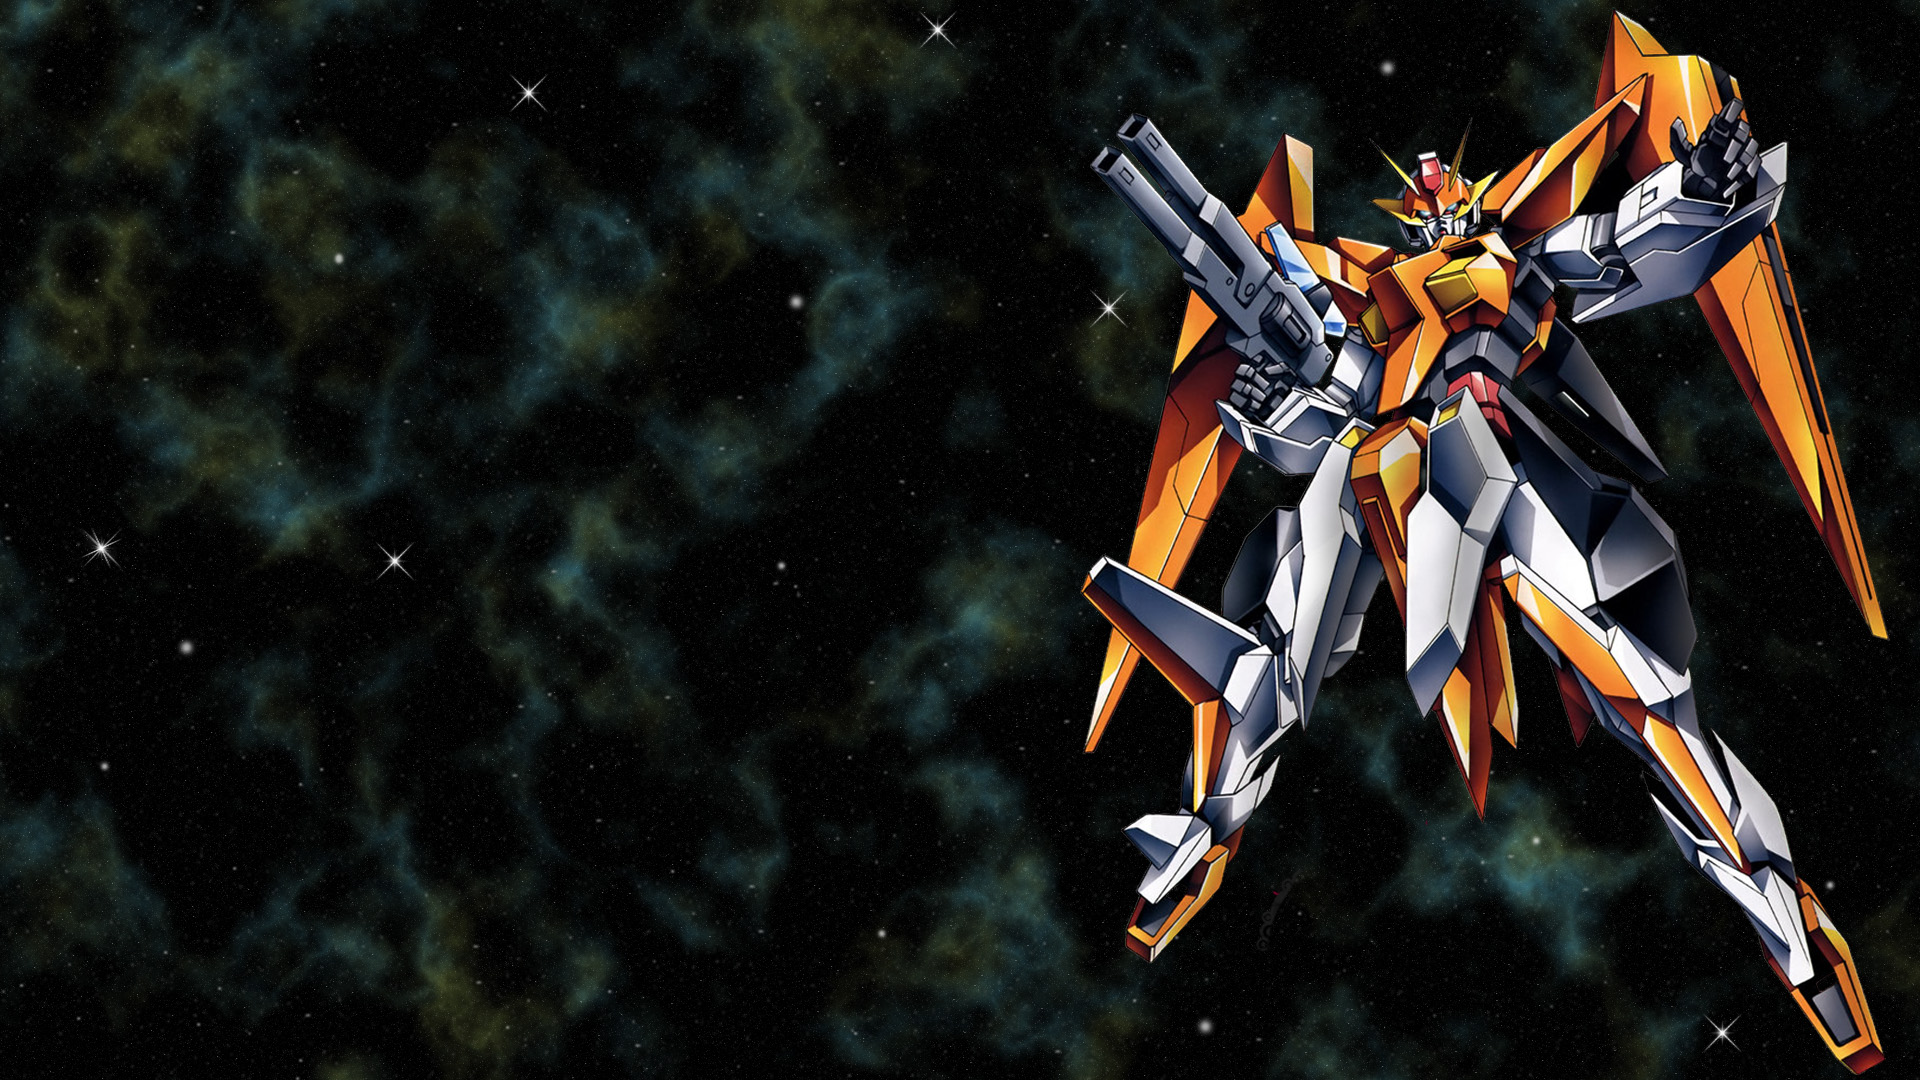 viciouscomputerscomWallpapersgundam yellow 1920x1080jpg 1920x1080